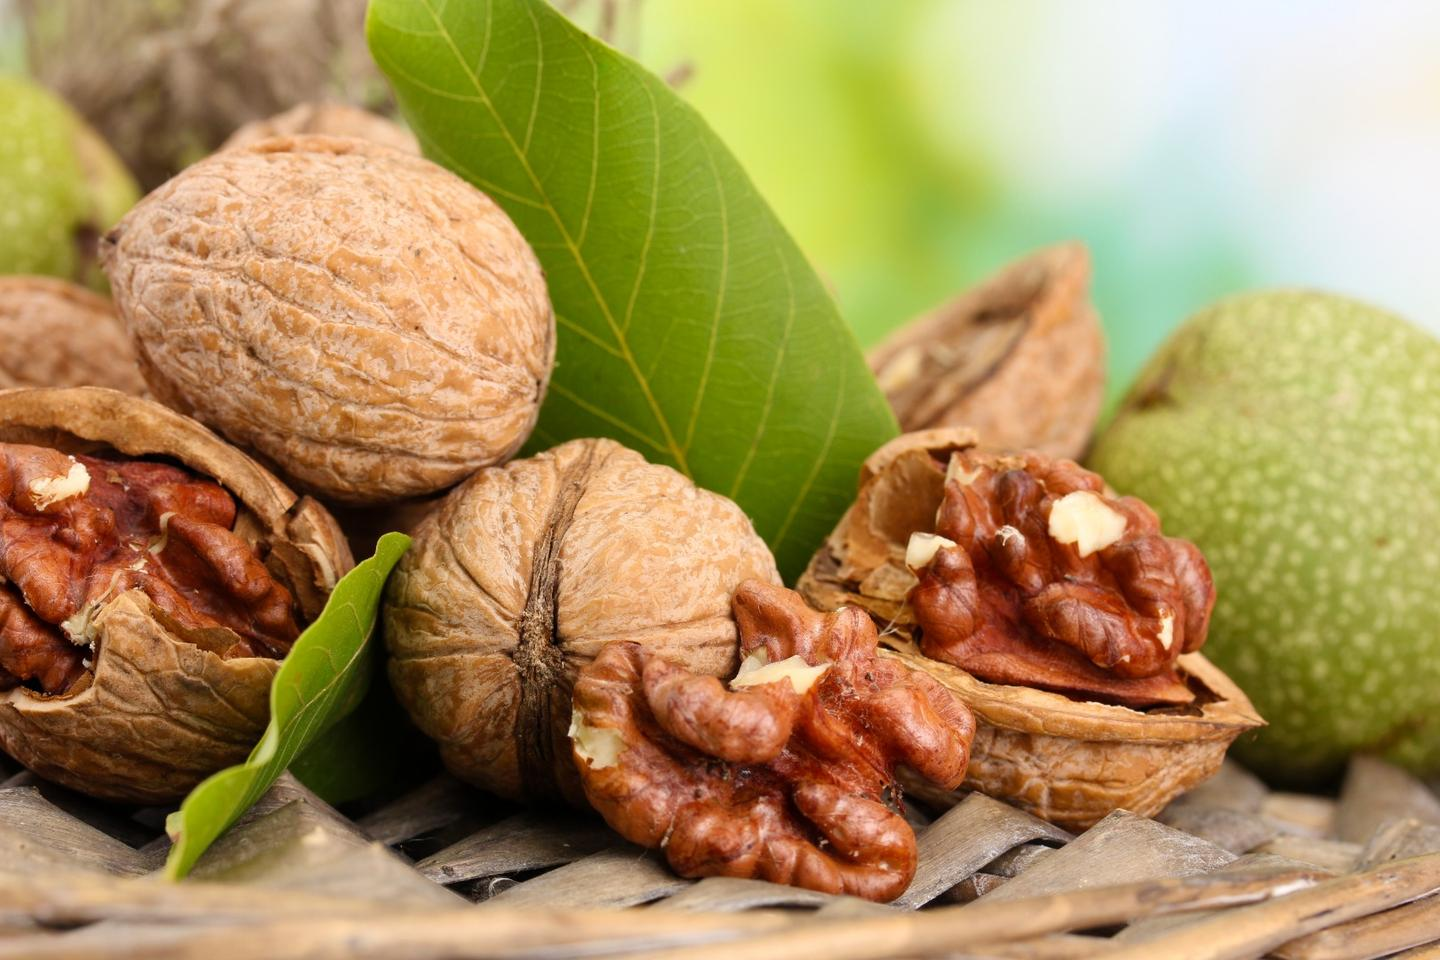 Walnuts contain an omega-3 that could lower blood pressure, although that's apparently not the whole story